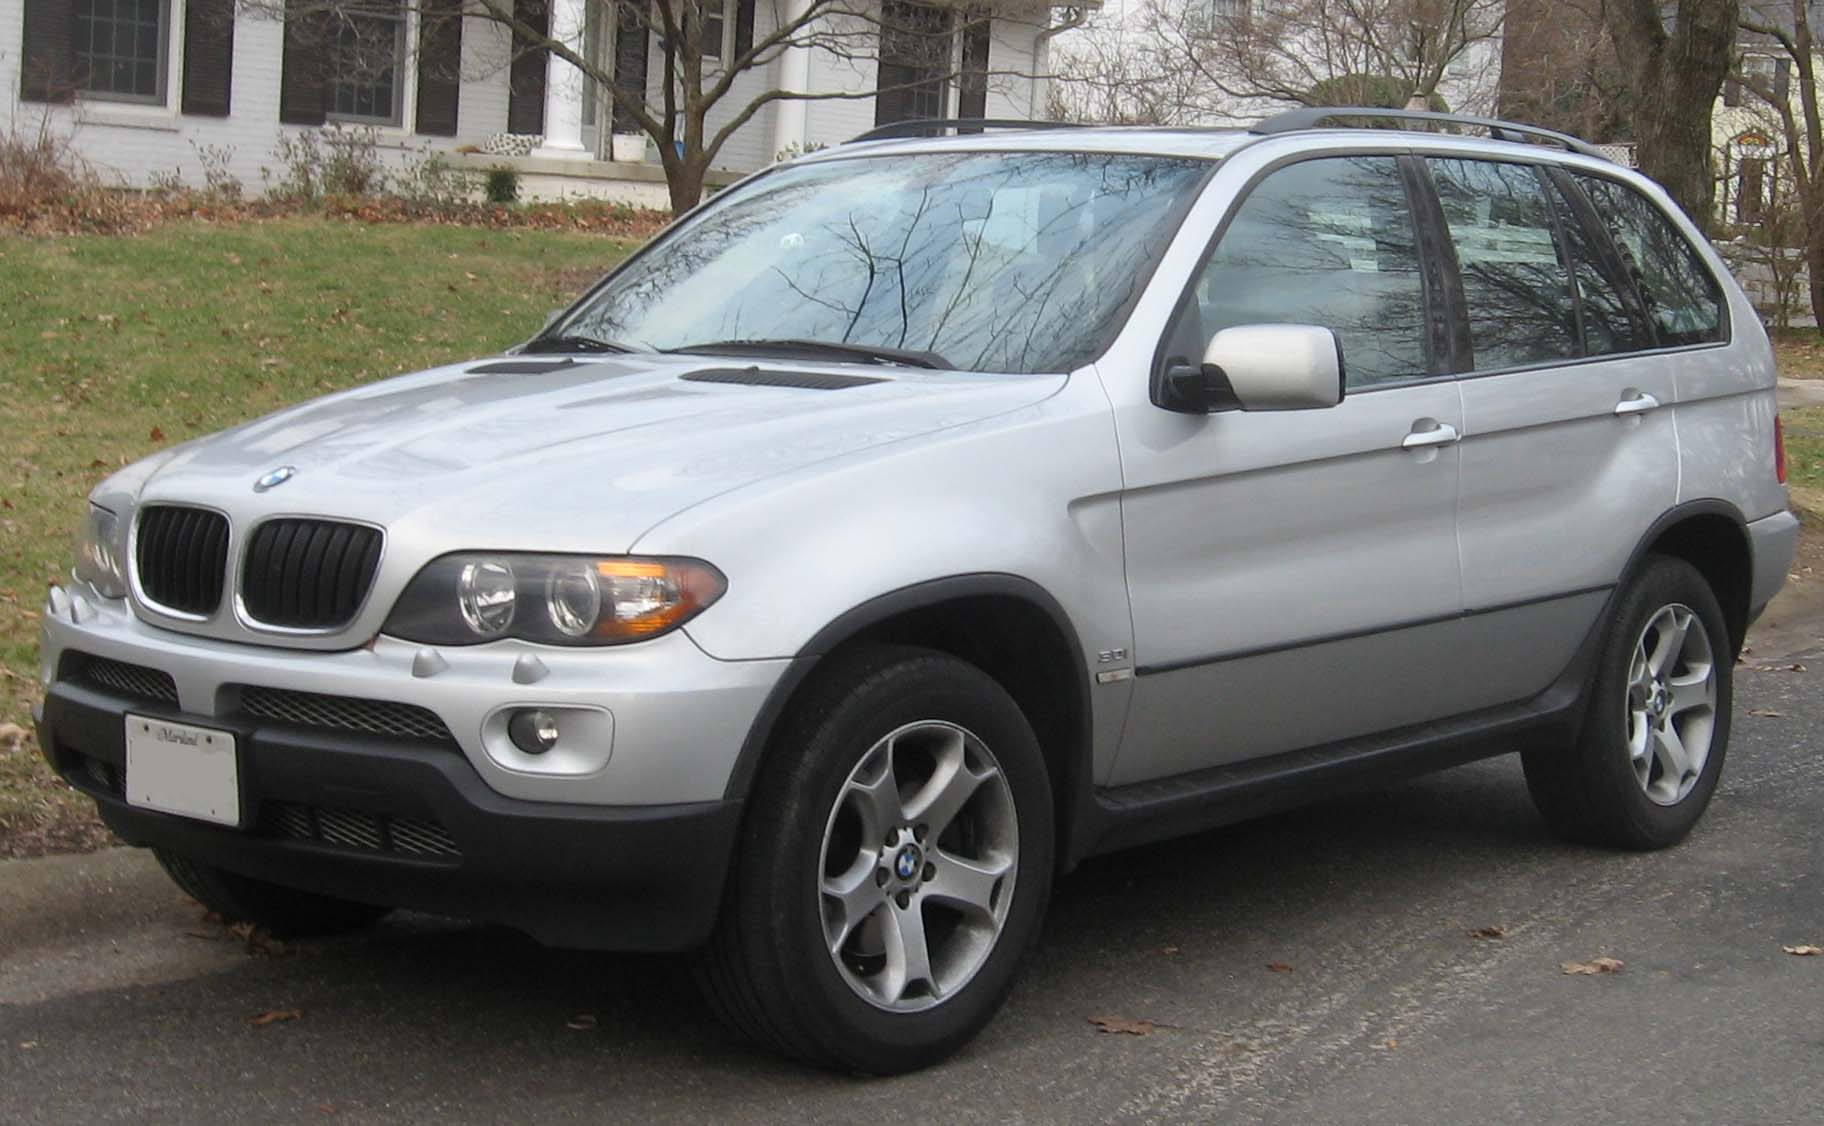 bmw x5 images #1